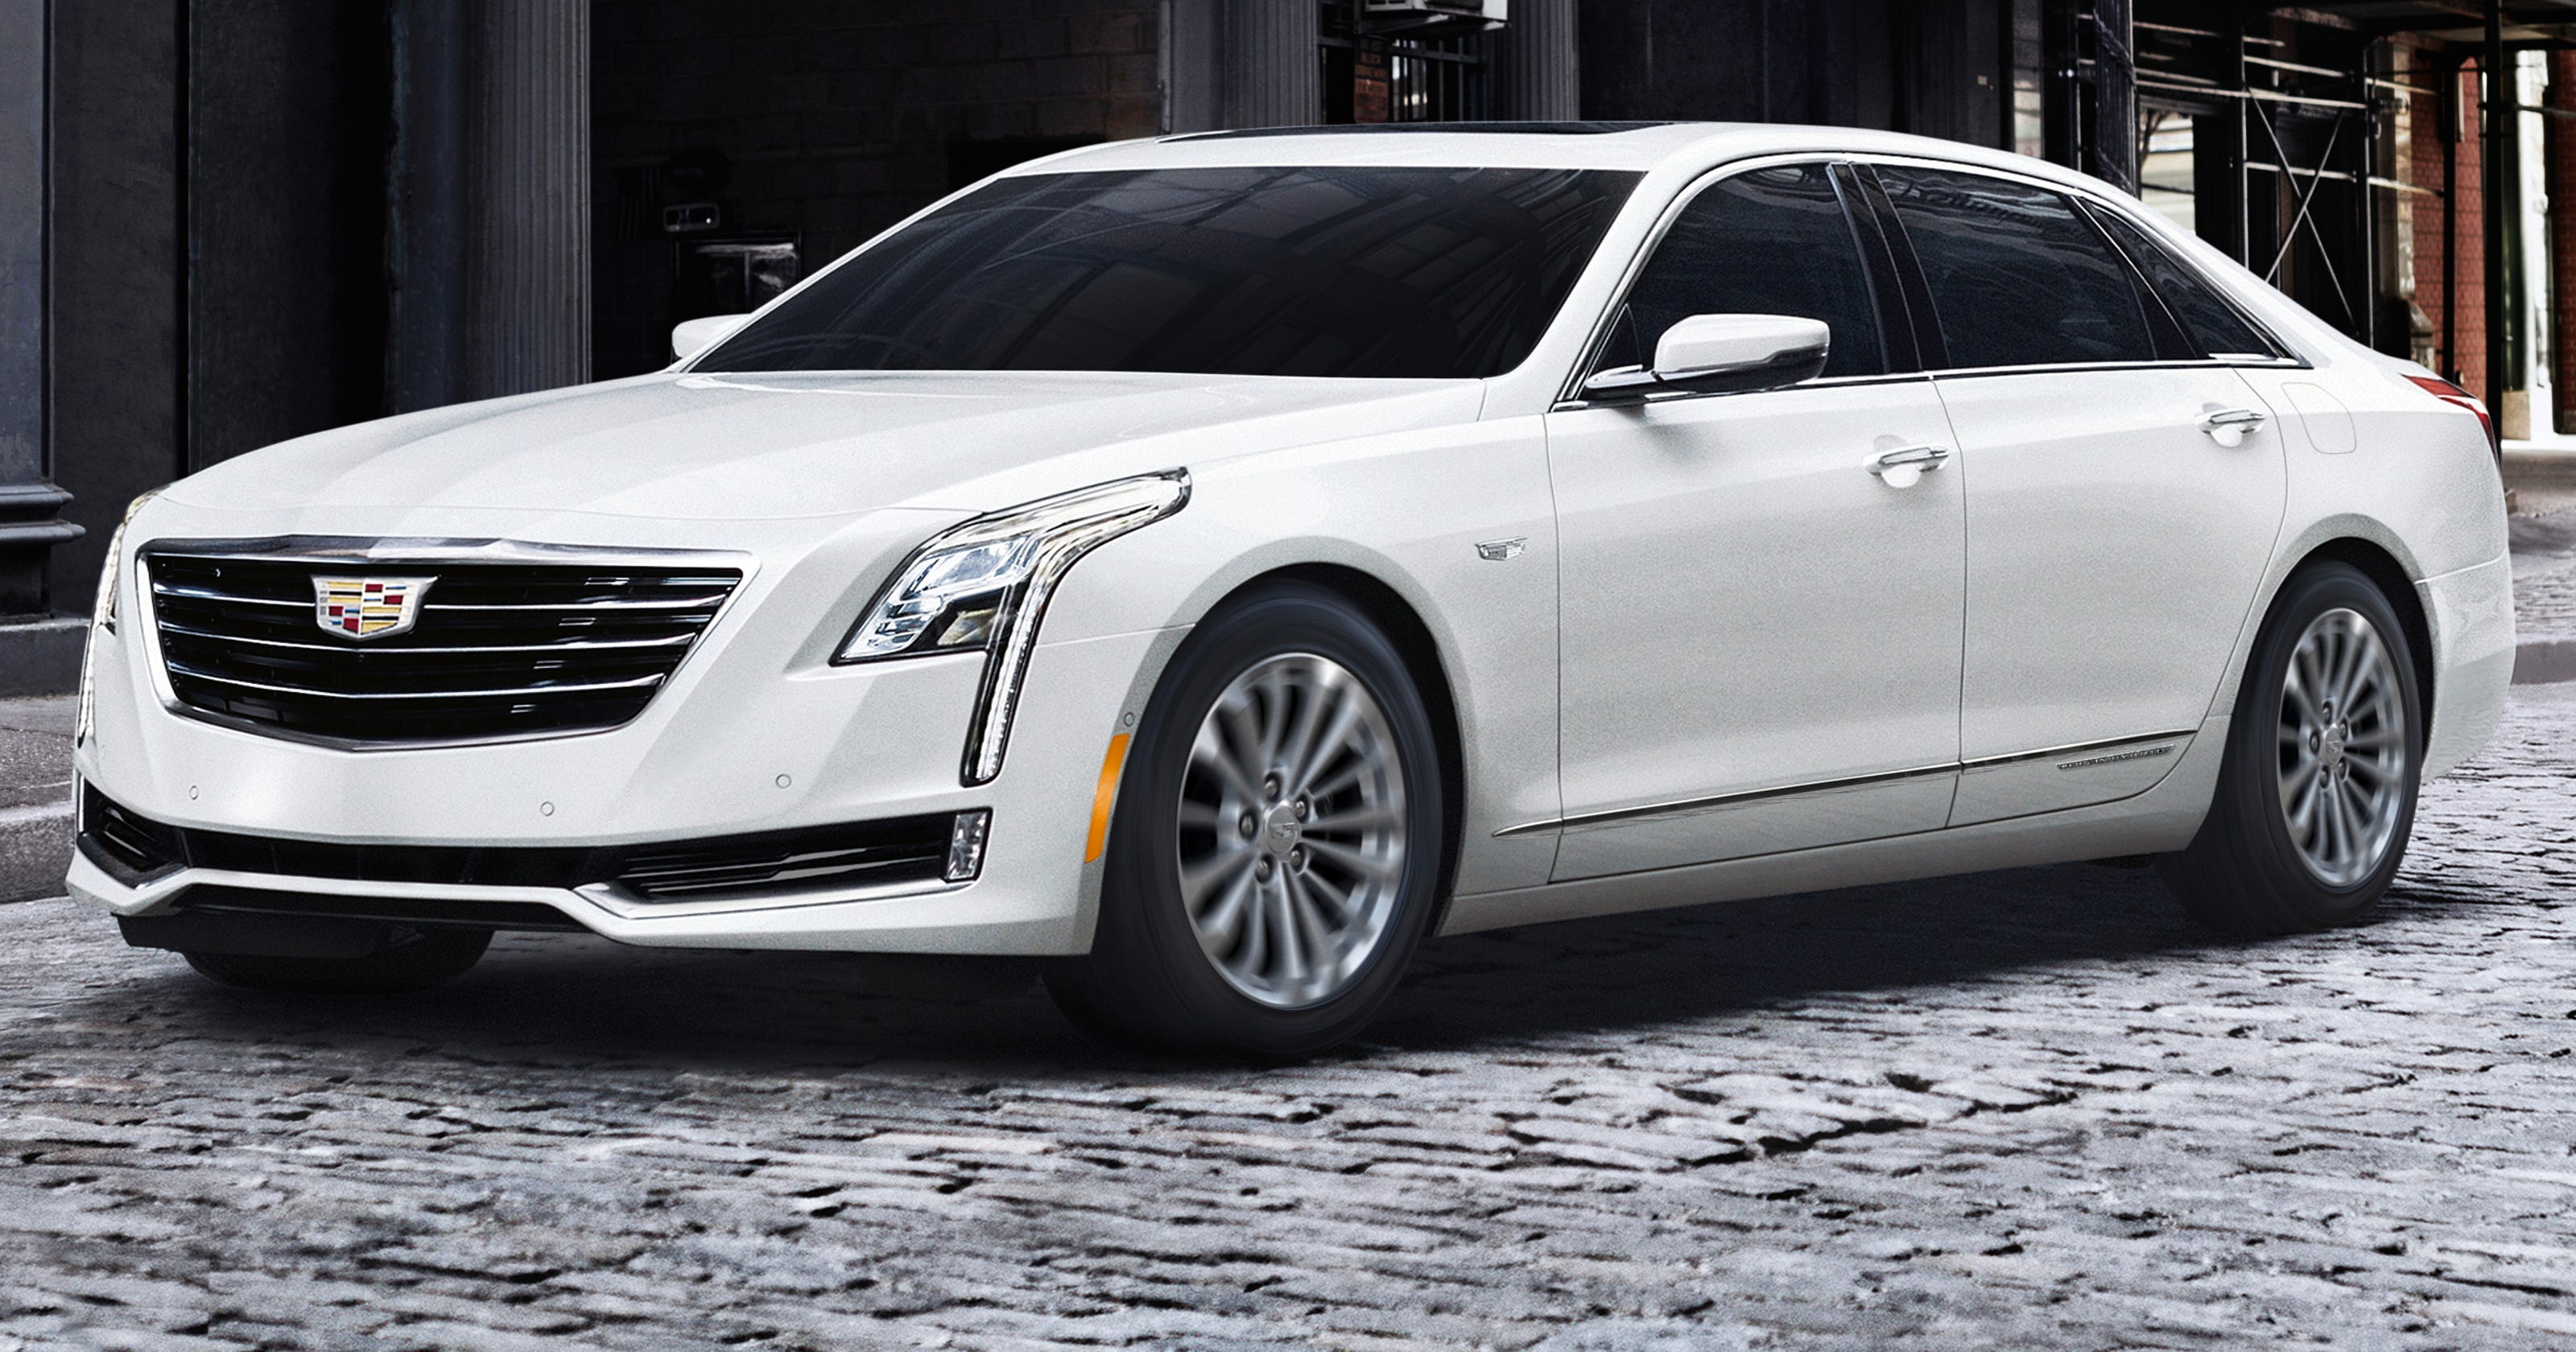 Review: Cadillac CT6 plug-in is a quiet champ